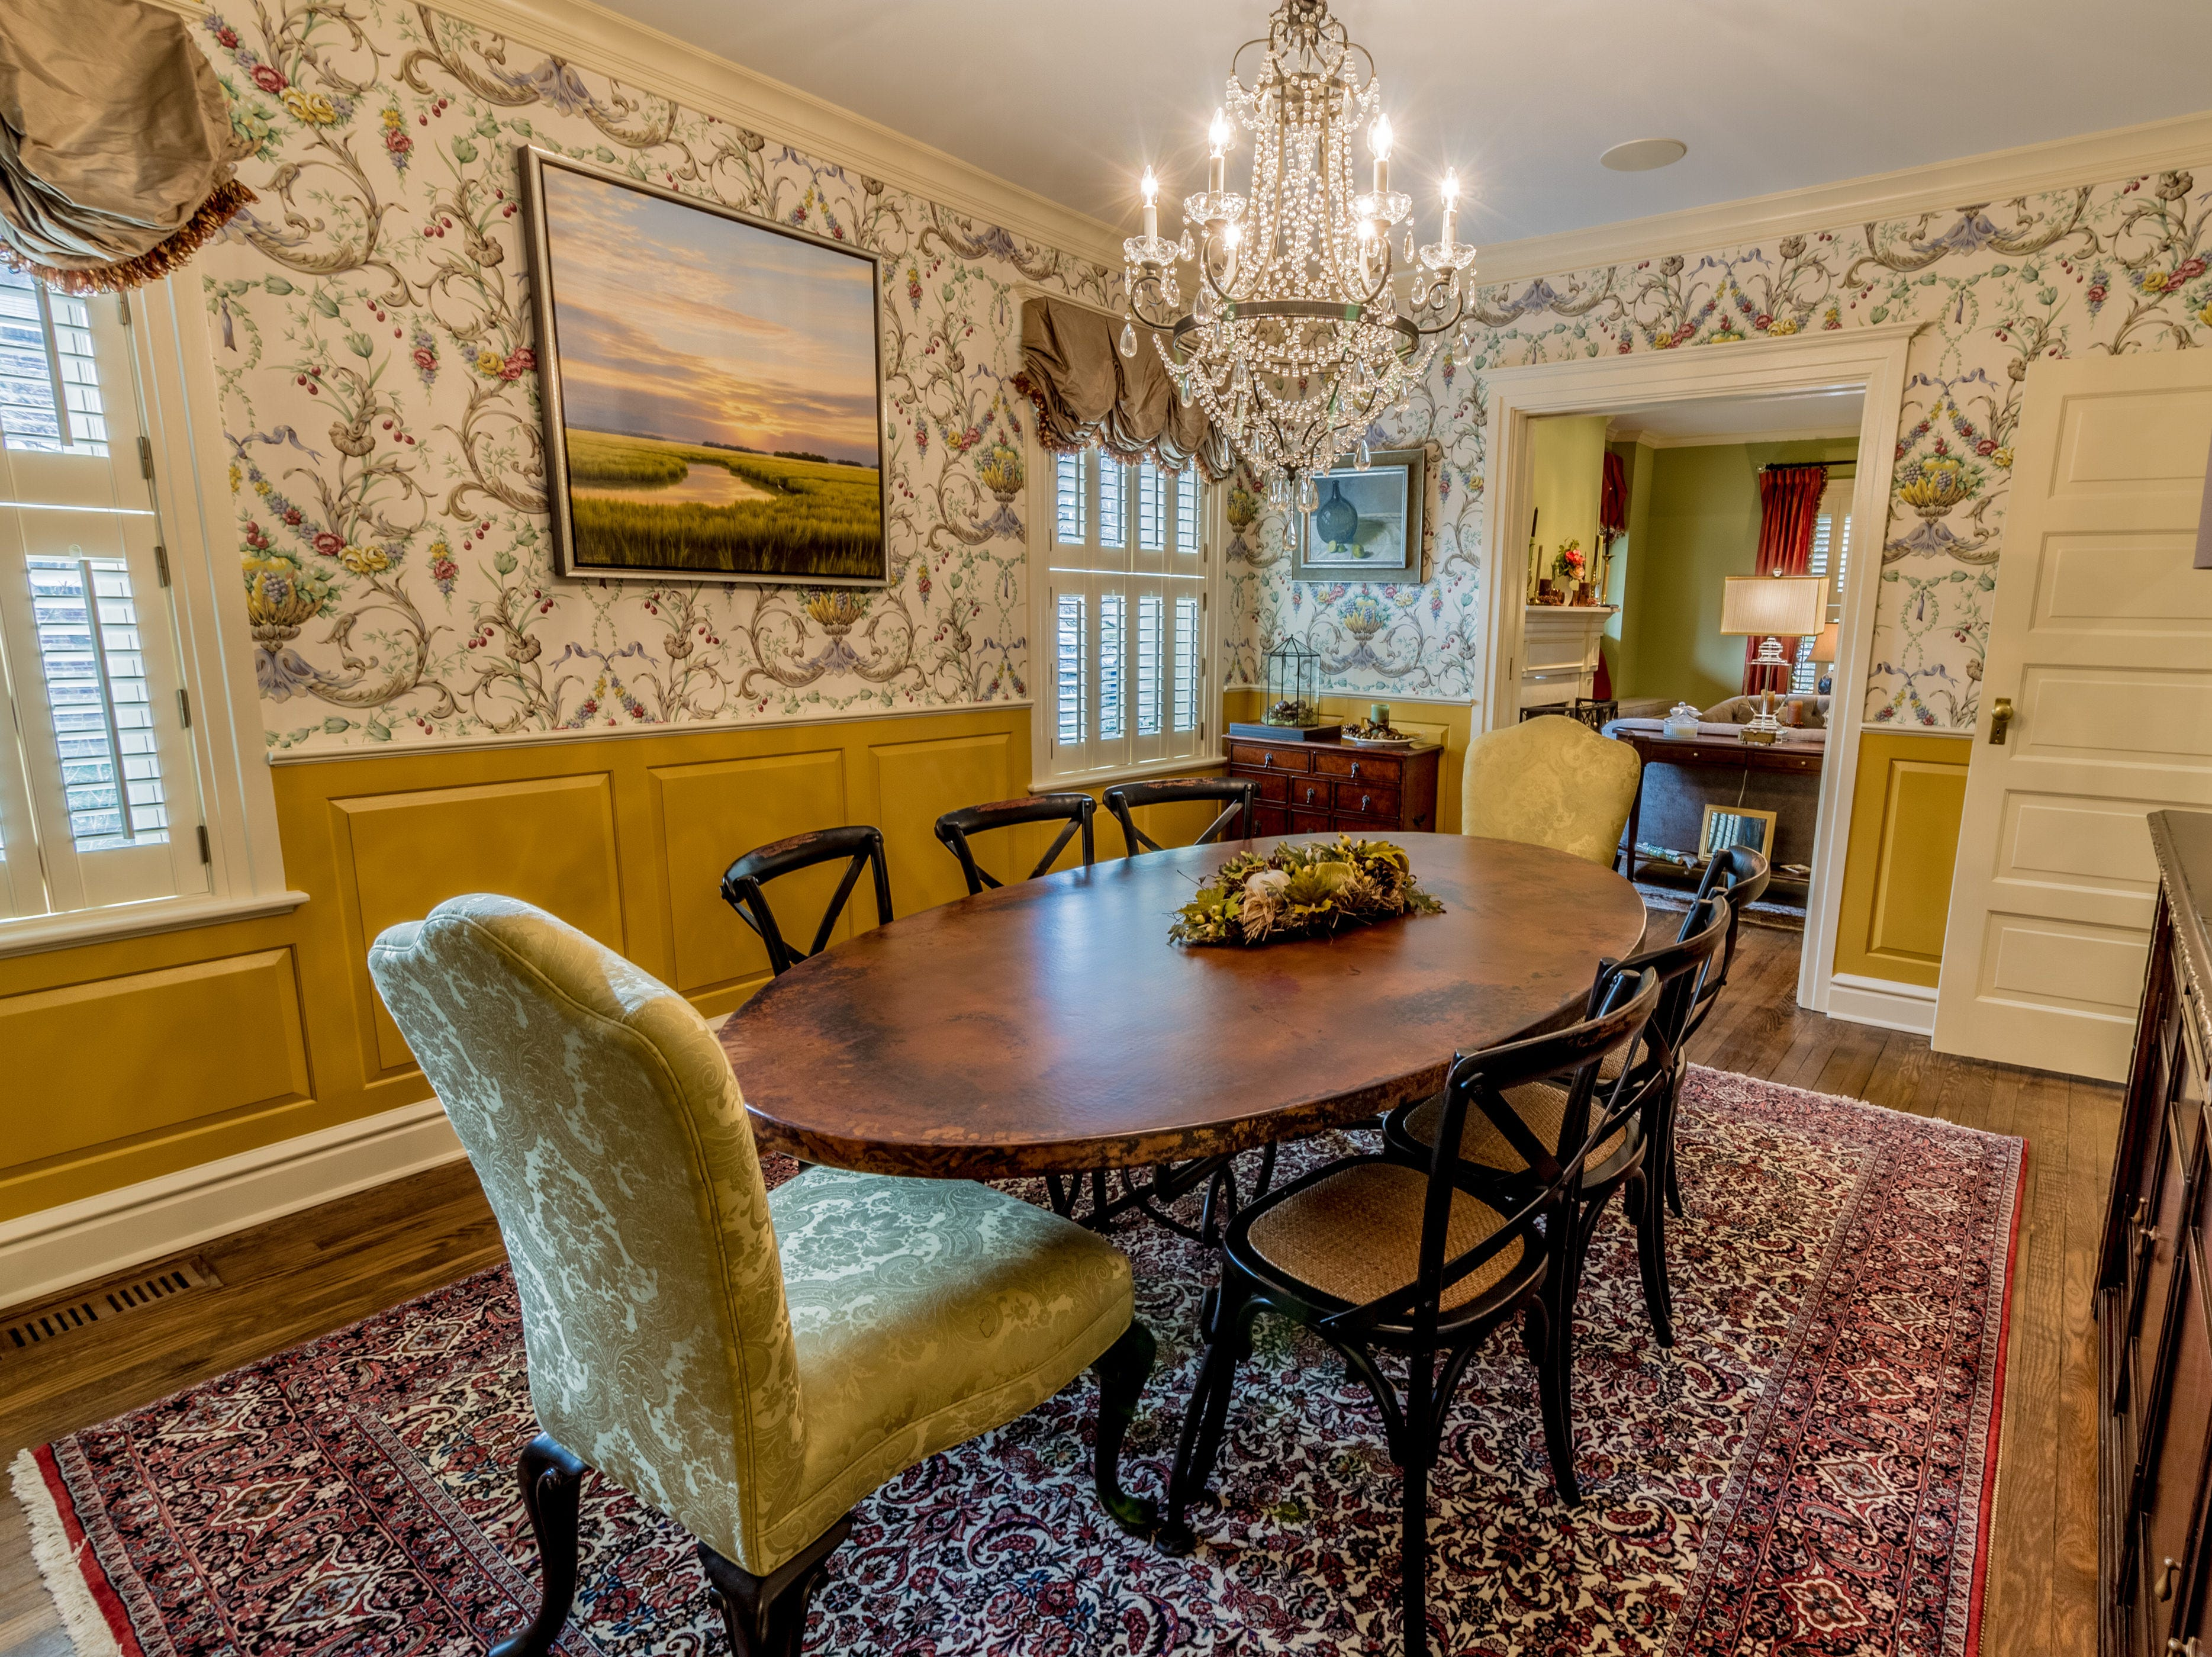 Moldings and a chair rail grace the formal dining room at 1100 North Rodney St. in Cool Spring.